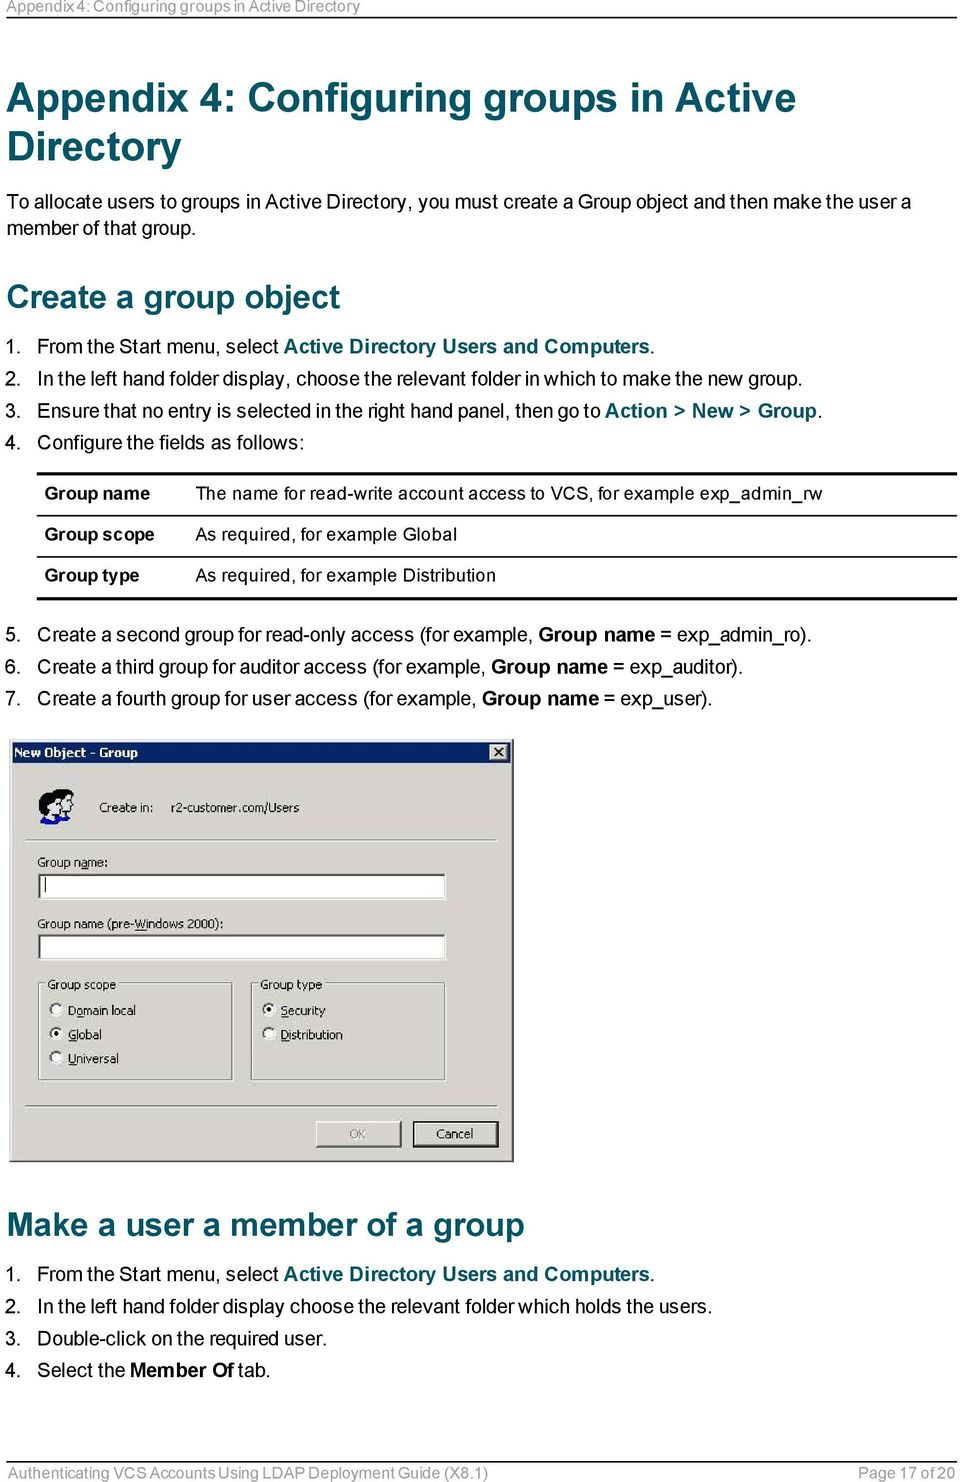 In the left hand folder display, choose the relevant folder in which to make the new group. 3. Ensure that no entry is selected in the right hand panel, then go to Action > New > Group. 4.